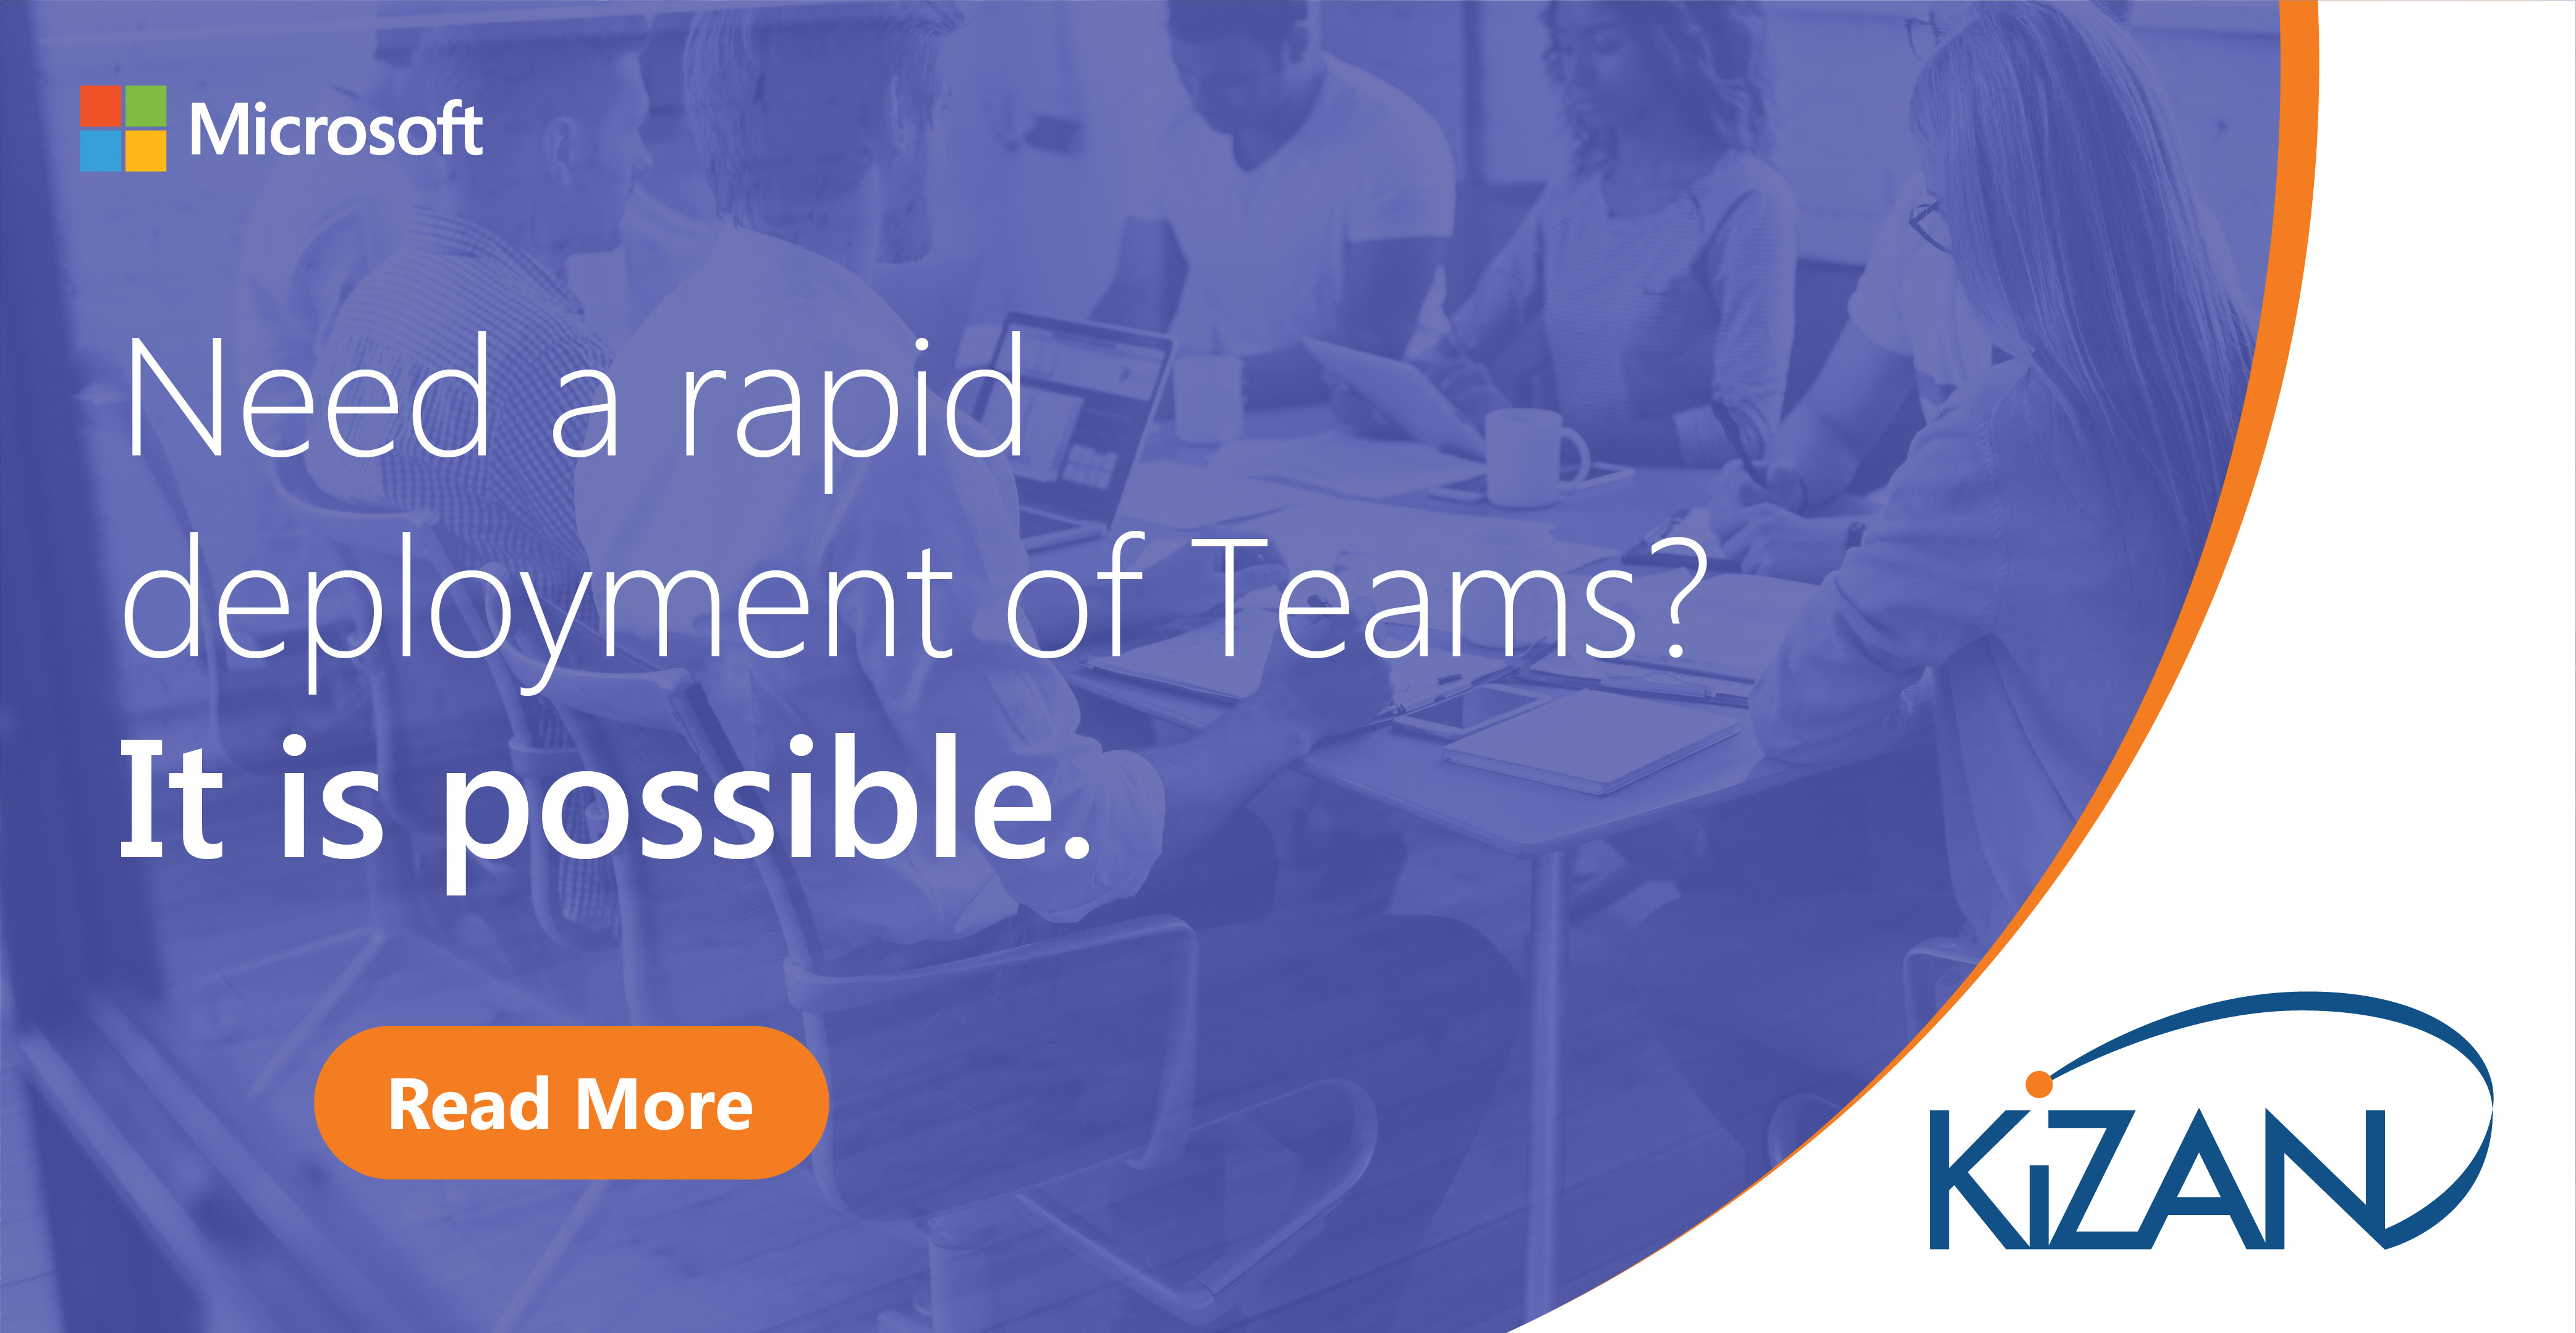 Need a rapid deployment of Teams? It is possible.